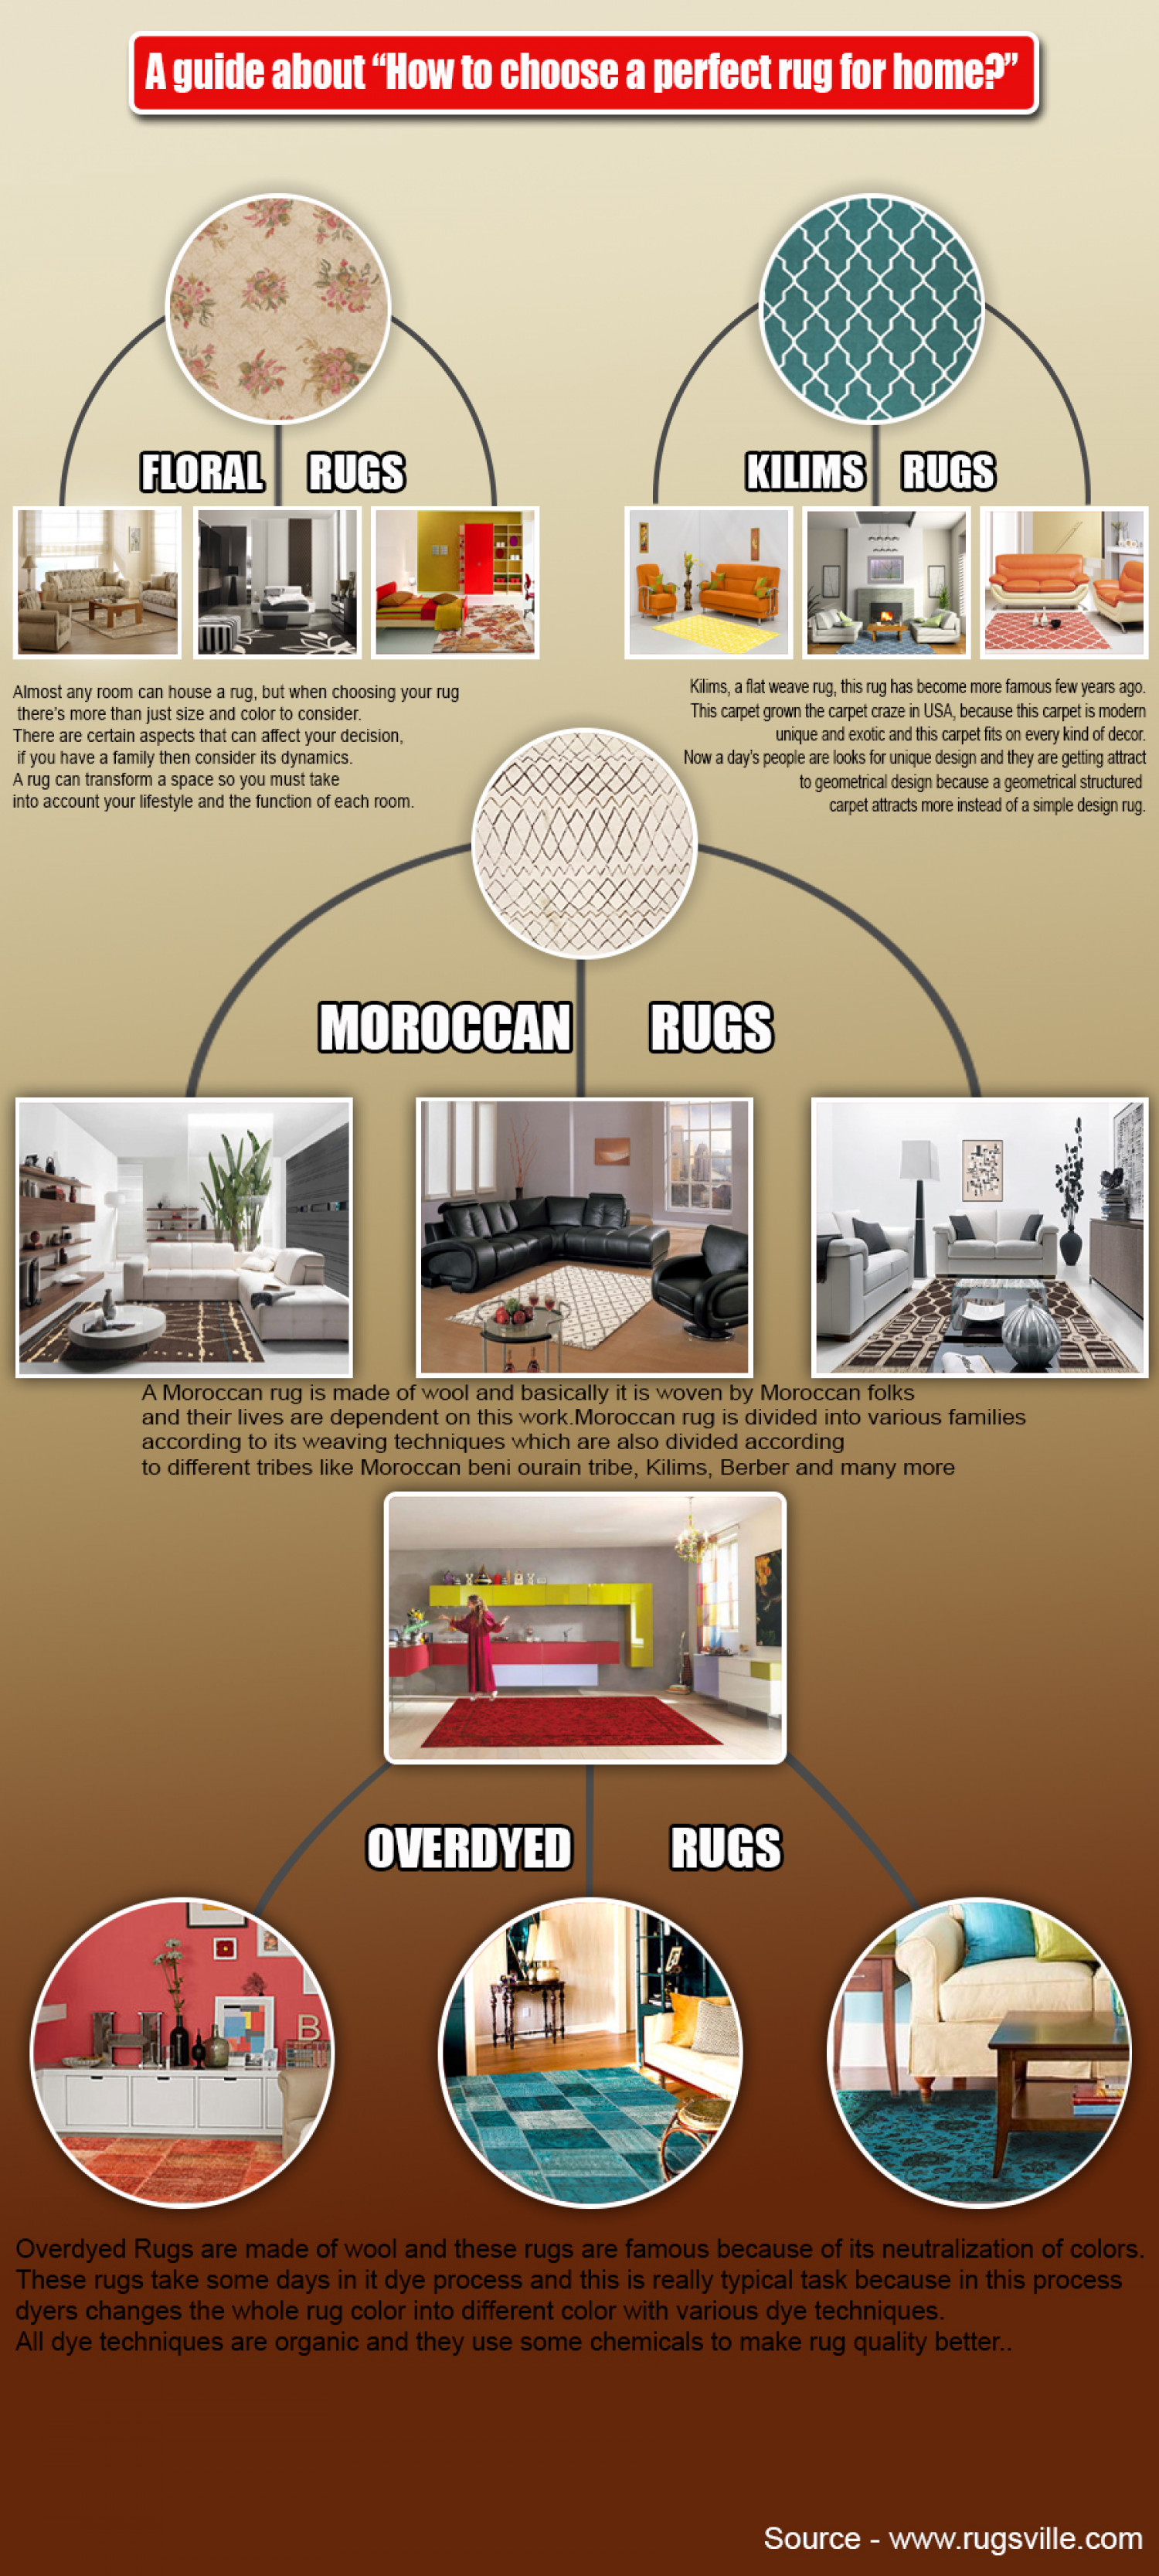 "A guide about ""How to choose a perfect rug?"" Infographic"